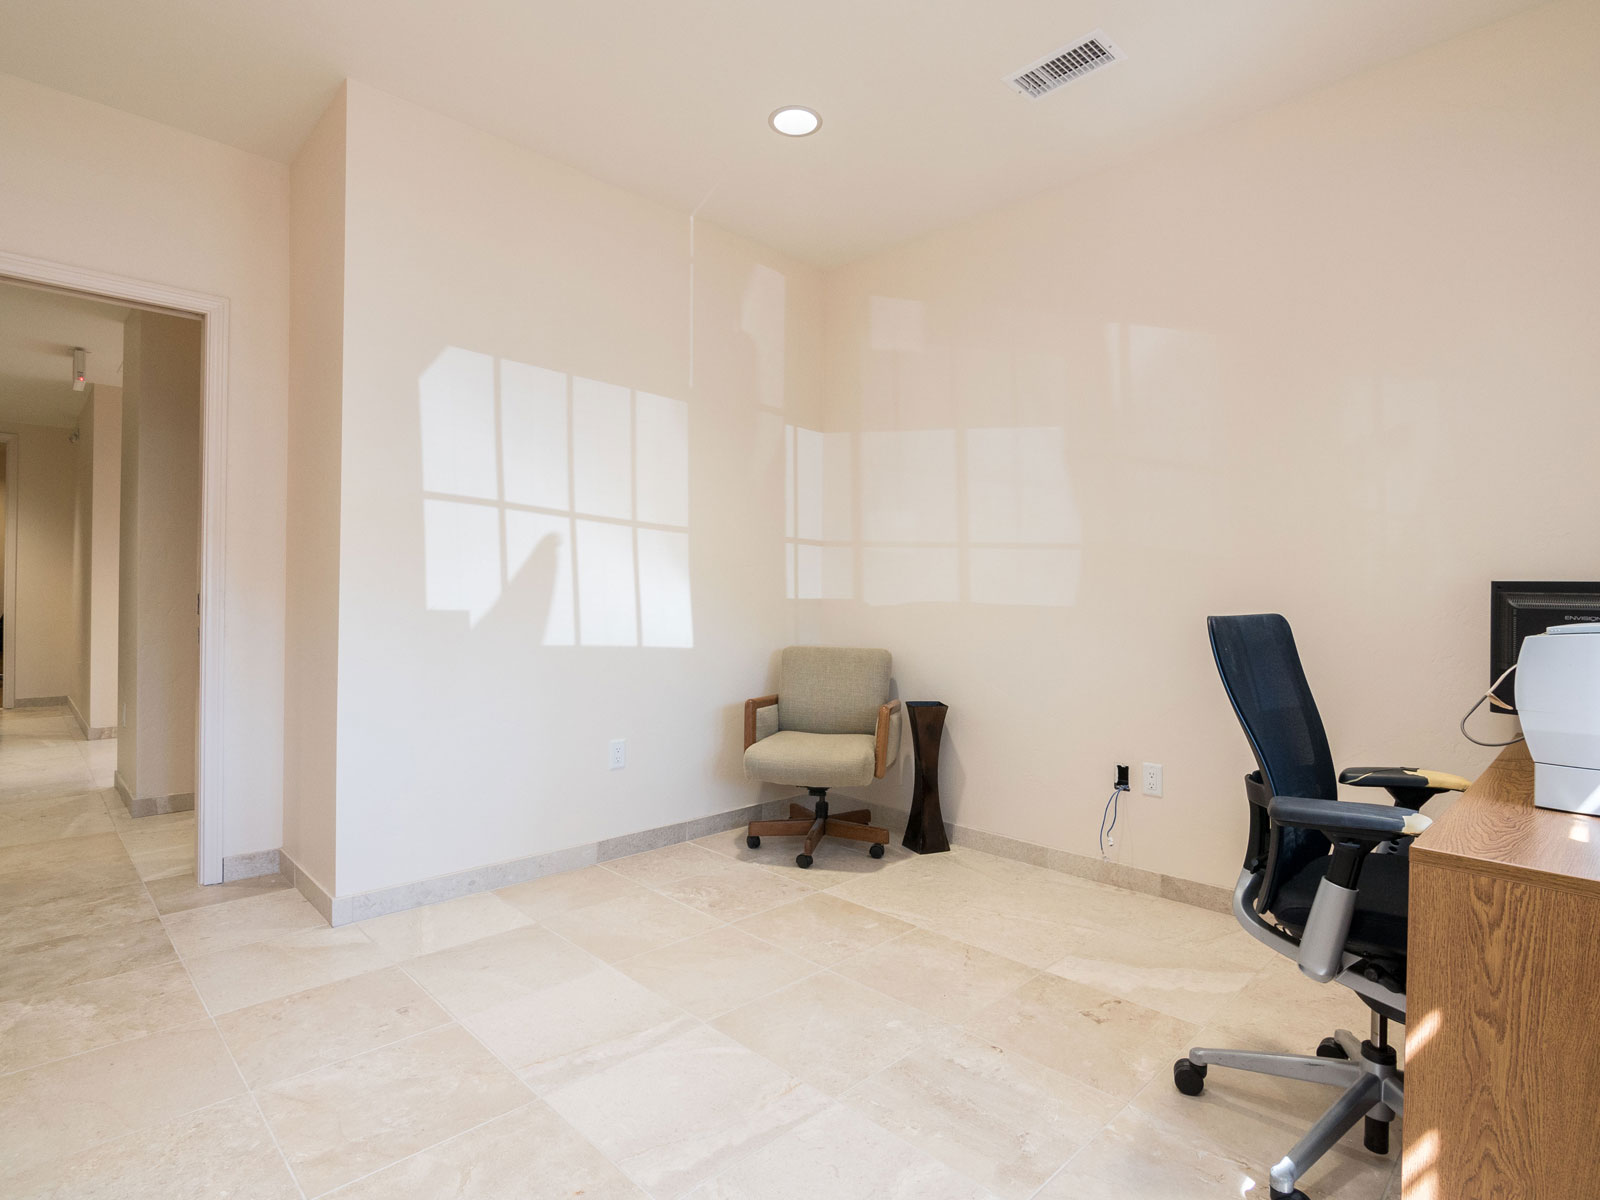 3165-s-melrose-vista-ca-executive-suite-for-lease-100